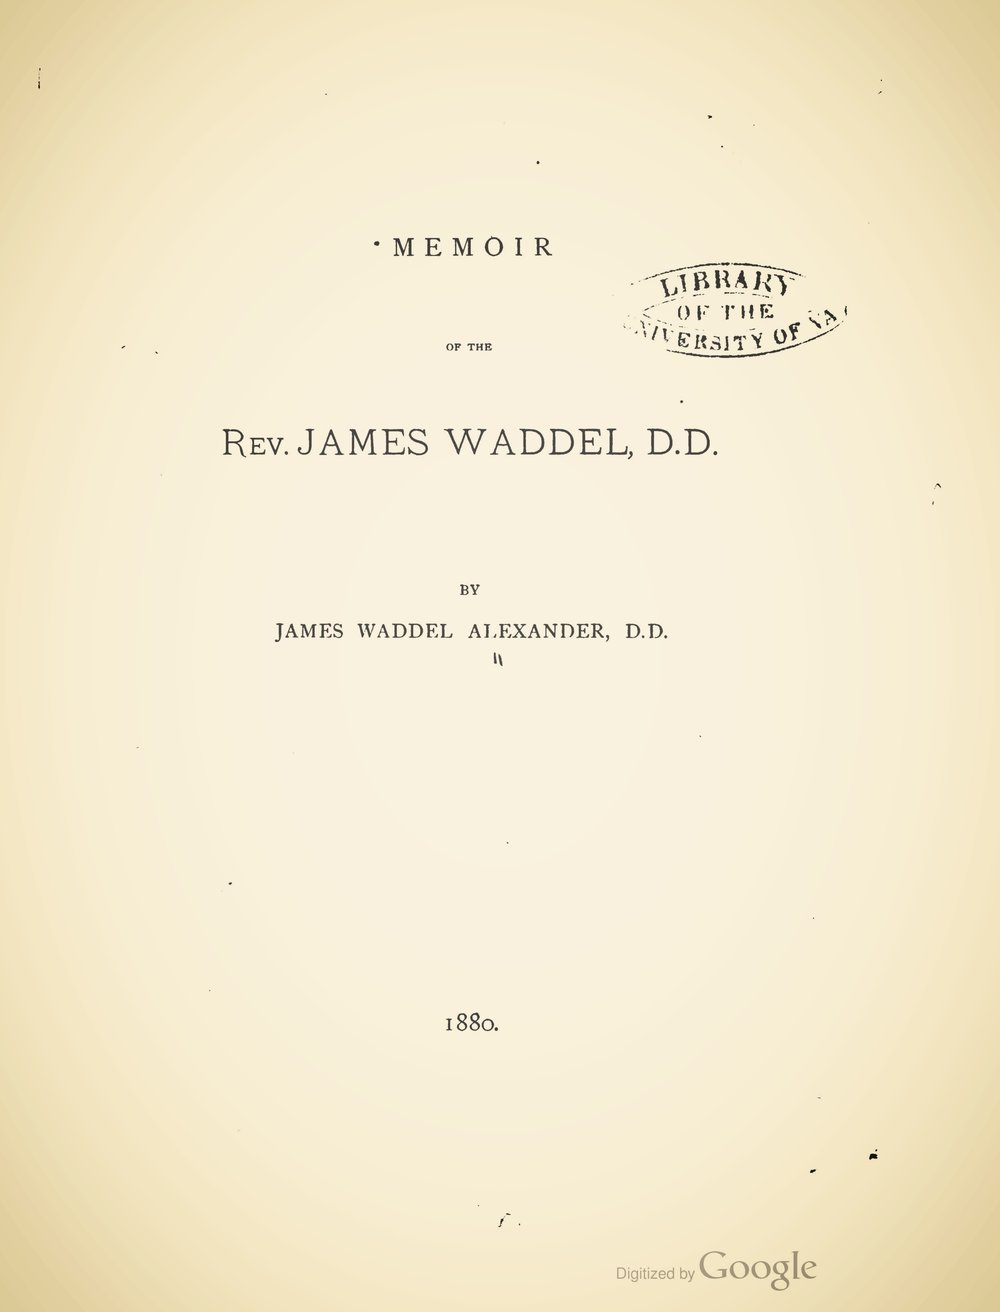 Alexander, James Waddel, Memoir of the Rev. James Waddel Title Page.jpg